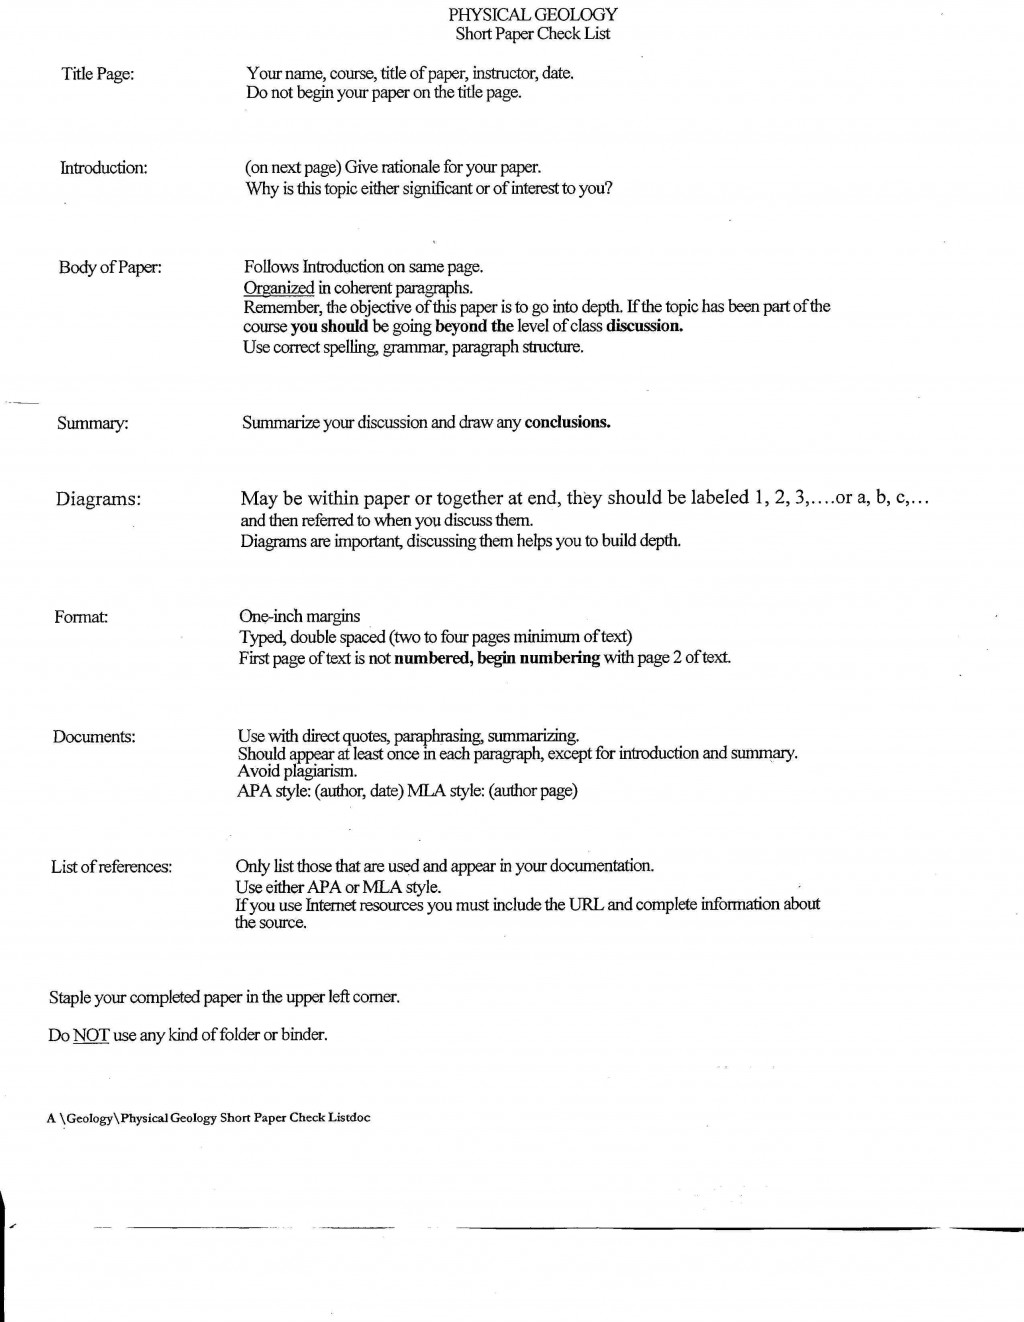 011 Research Paper Short Checklist Introductions To Papers Sensational Example Large